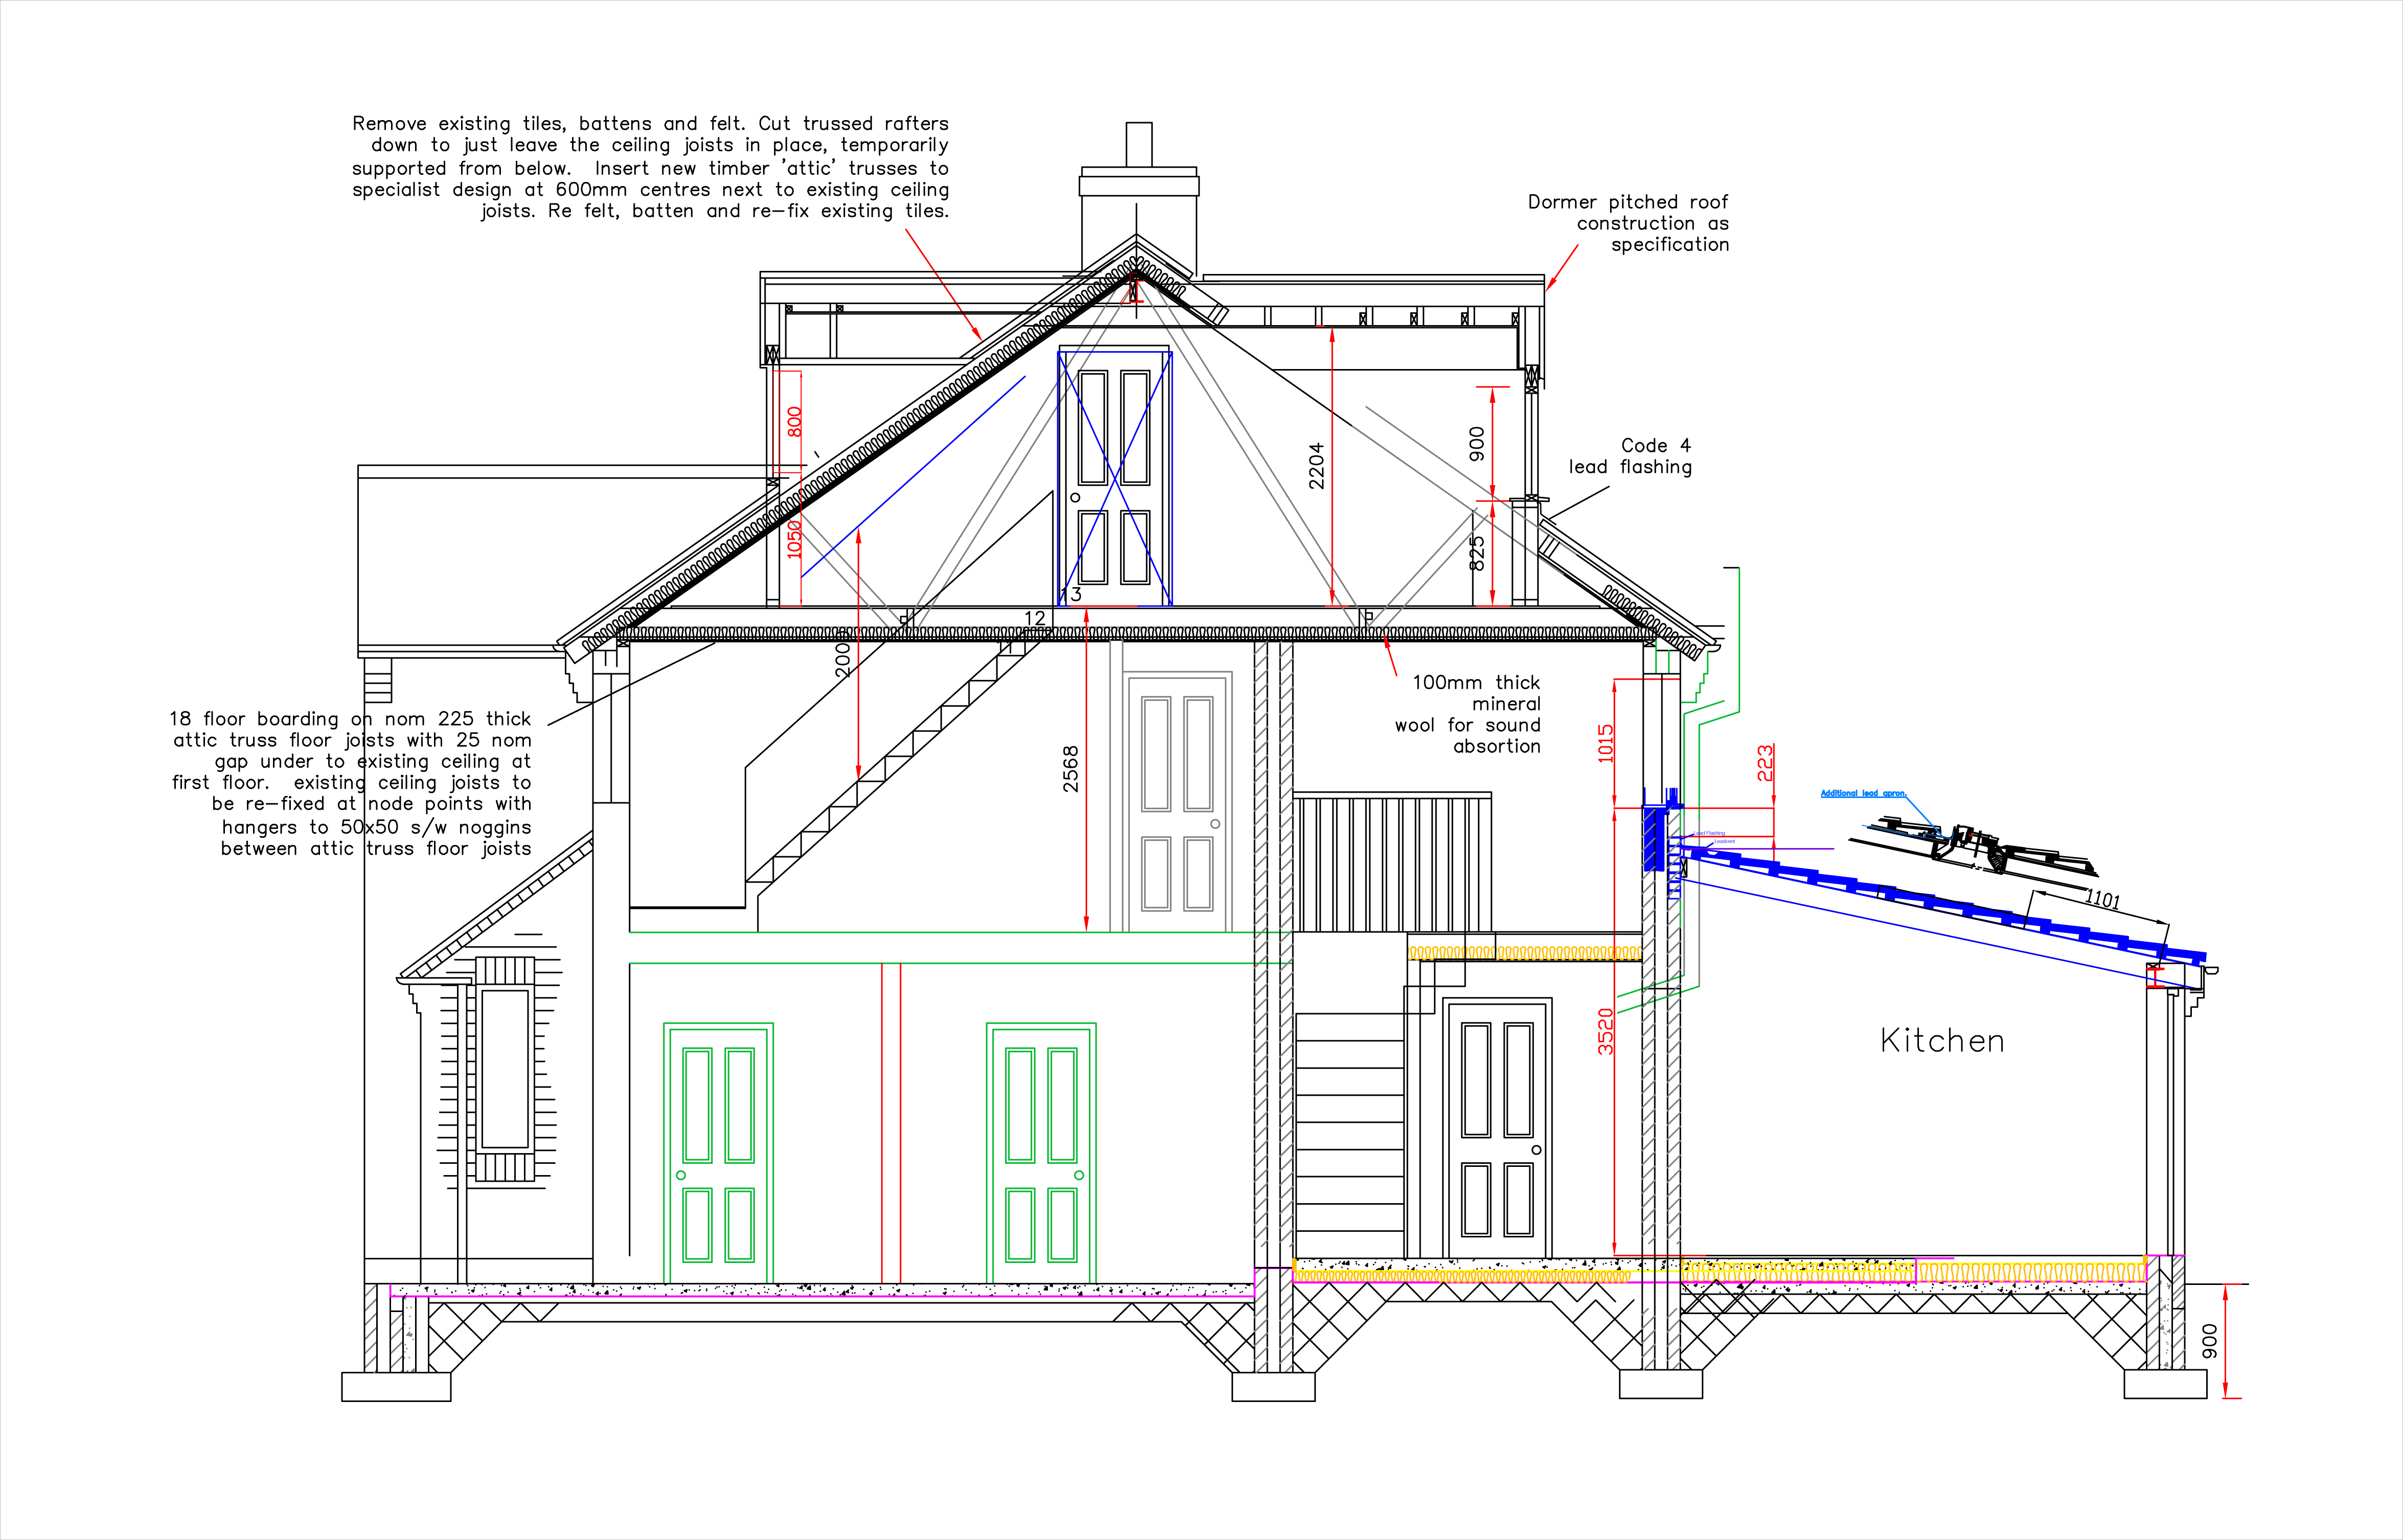 Planning Application Drawings - On Site & Online. CAD